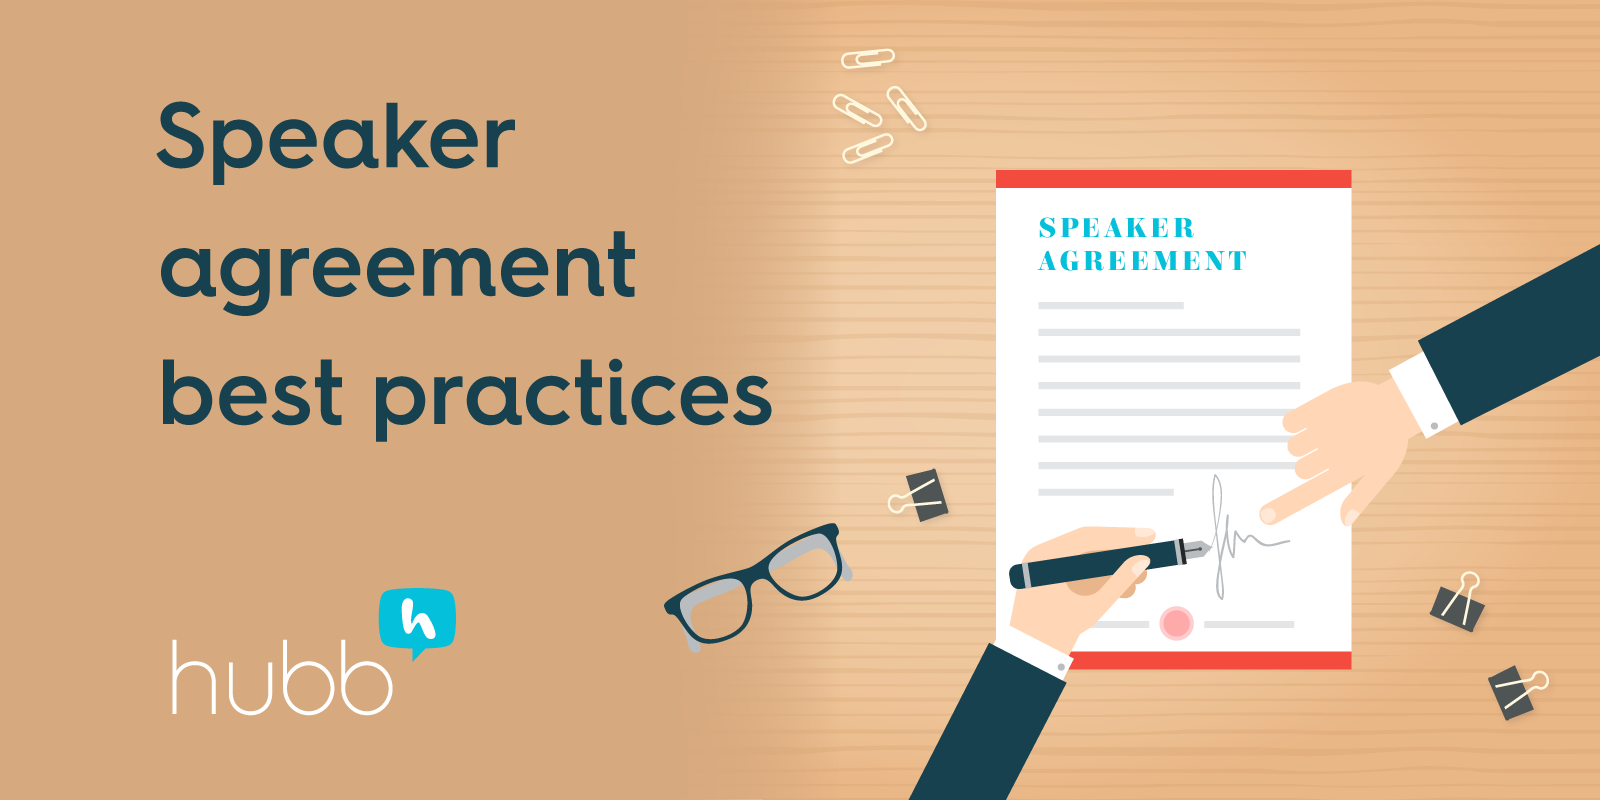 How to create effective speaker agreements